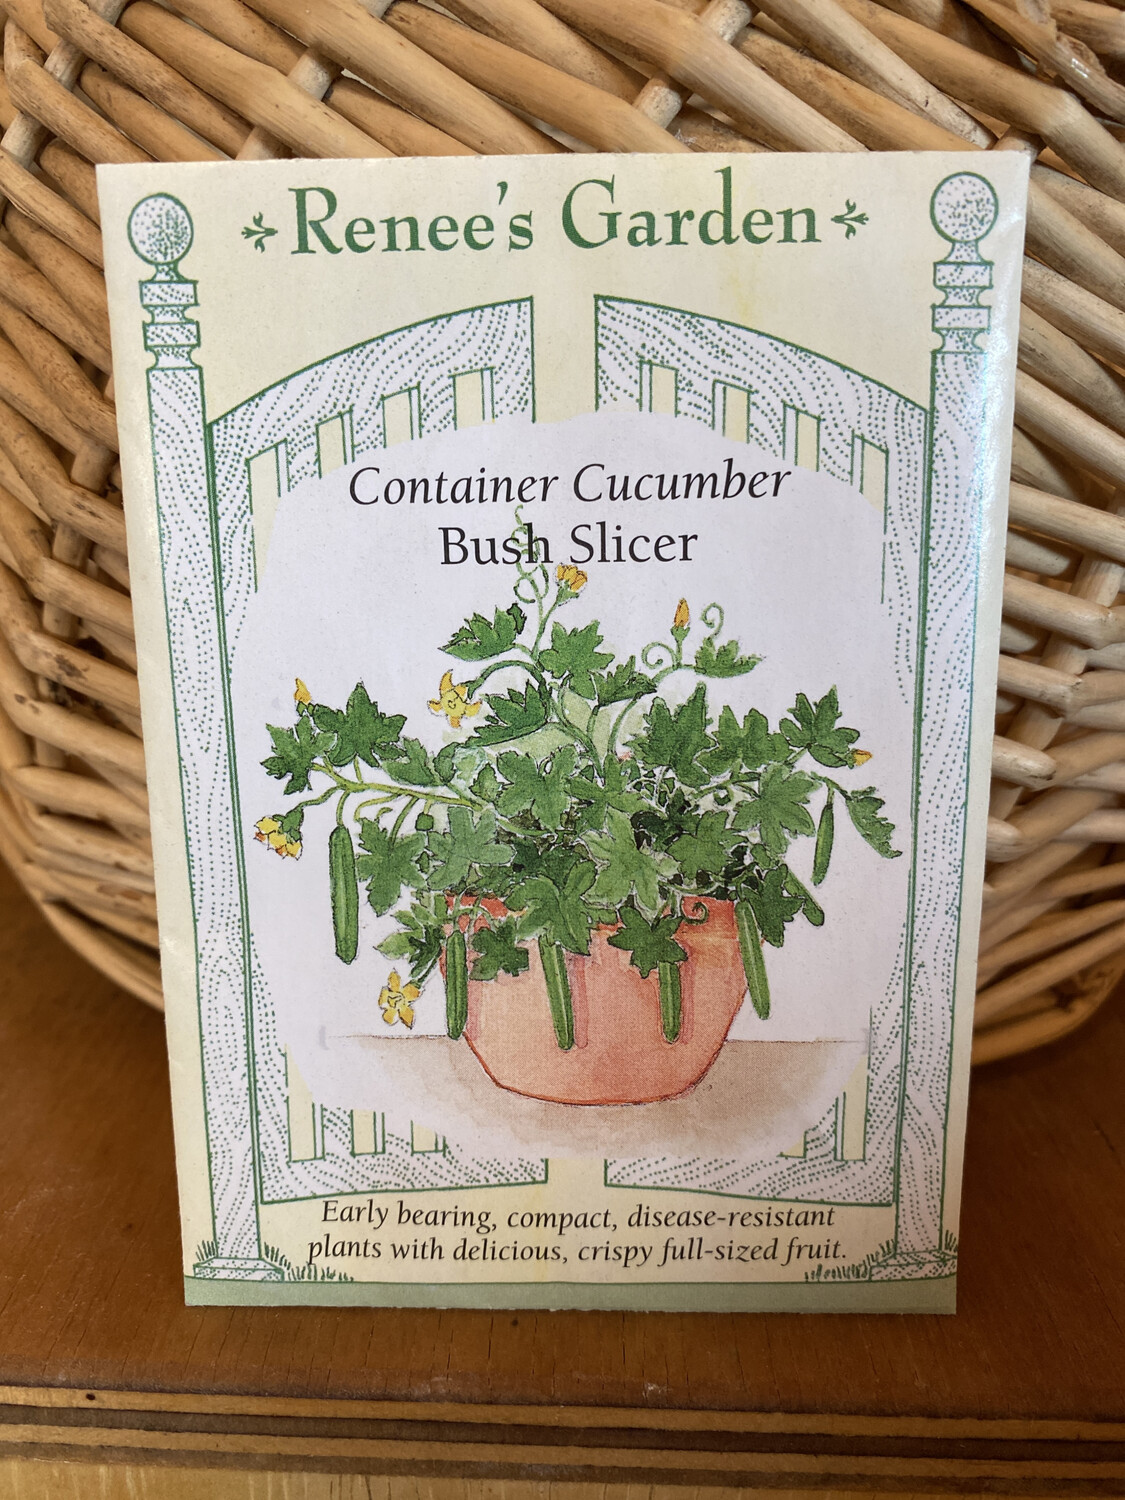 Container Cucumber Bush Slicer | Renee's Garden Seed Pack | Past Year's Seeds | Reduced Price